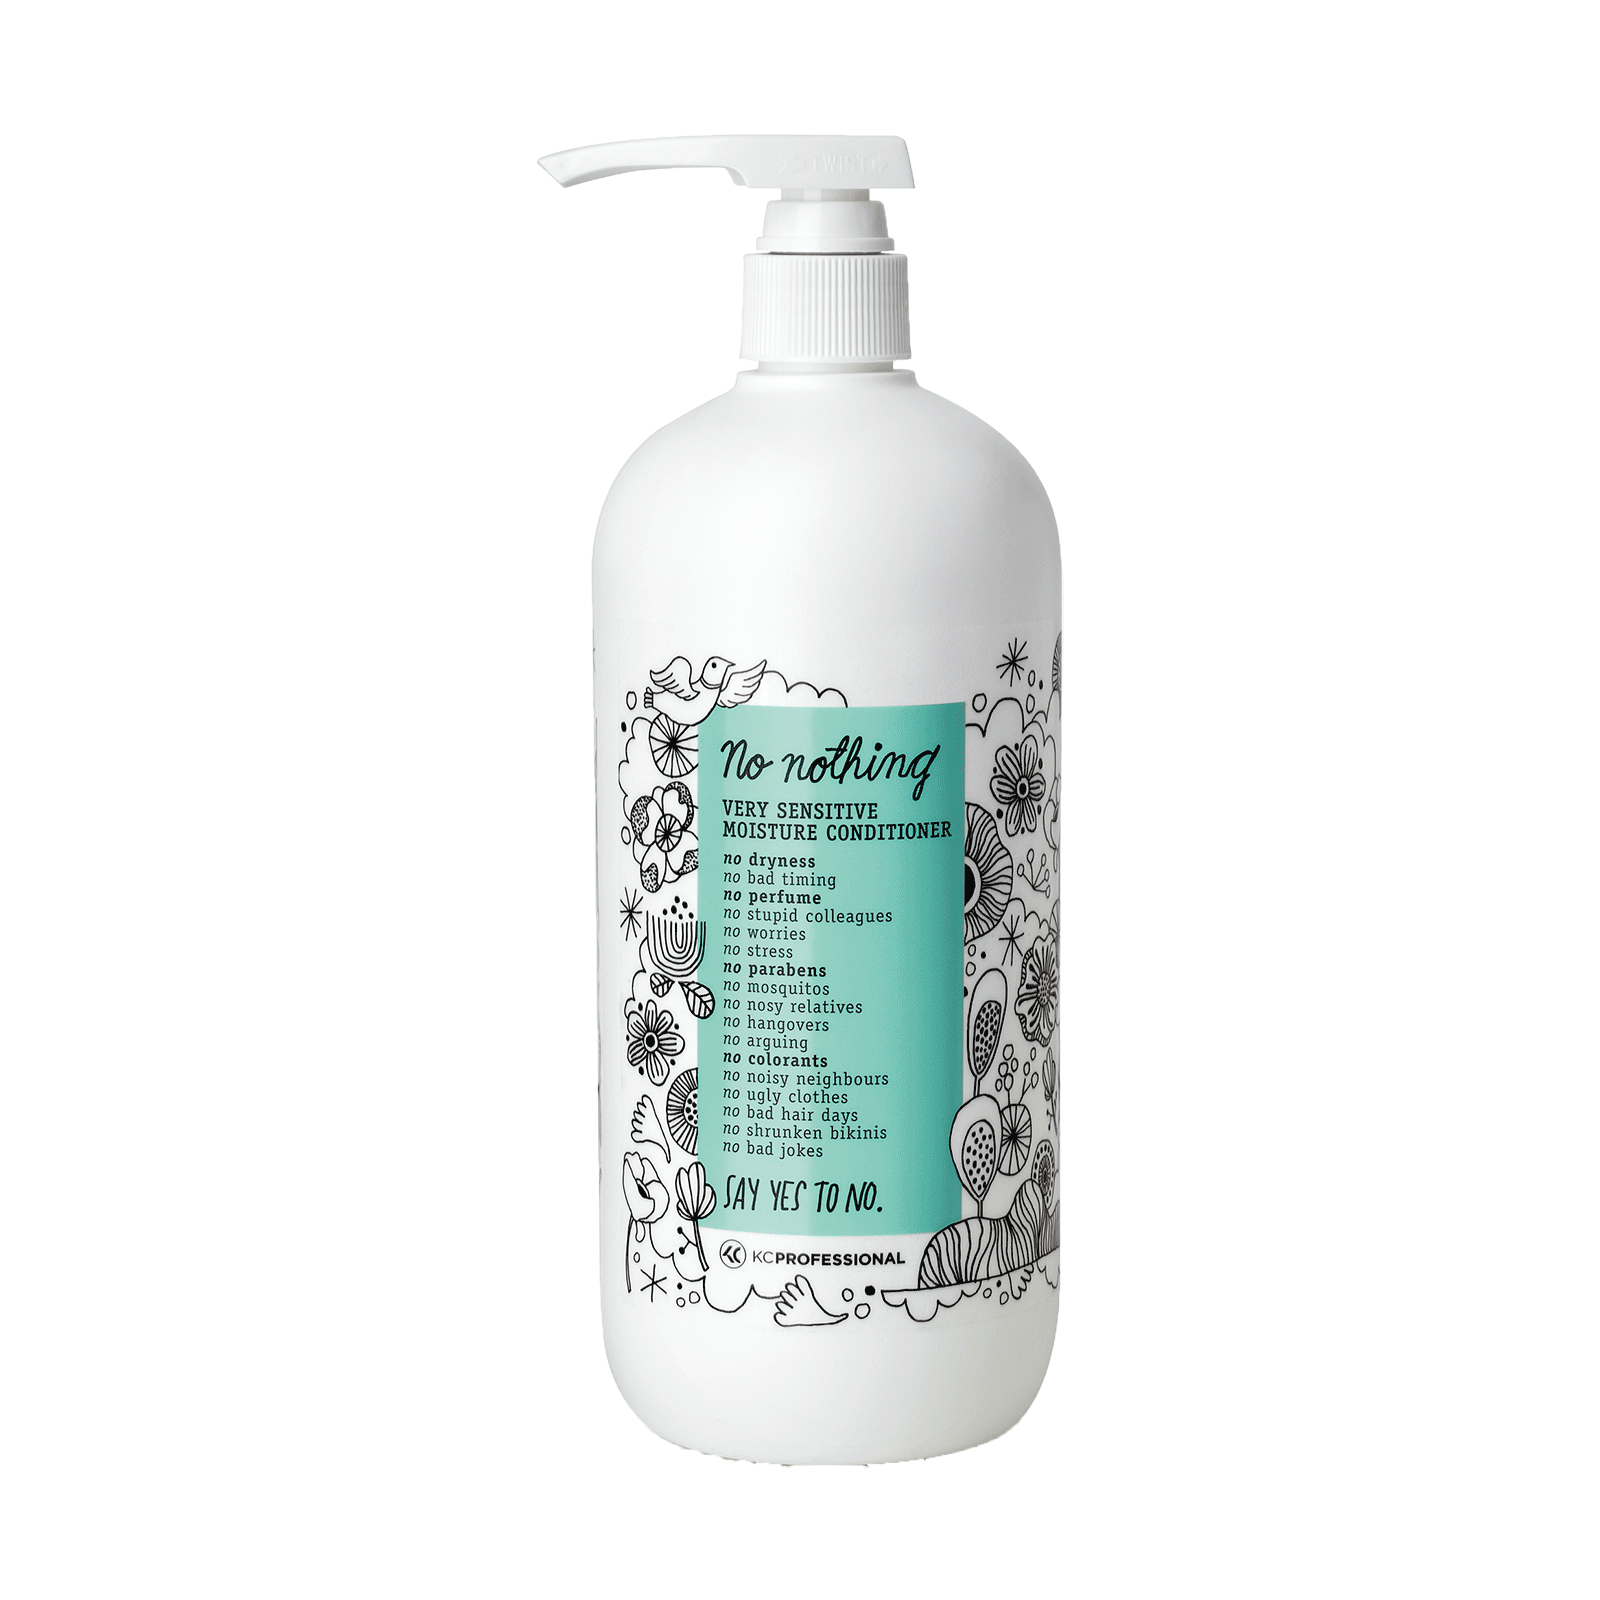 Very Sensitive Moisture Conditioner